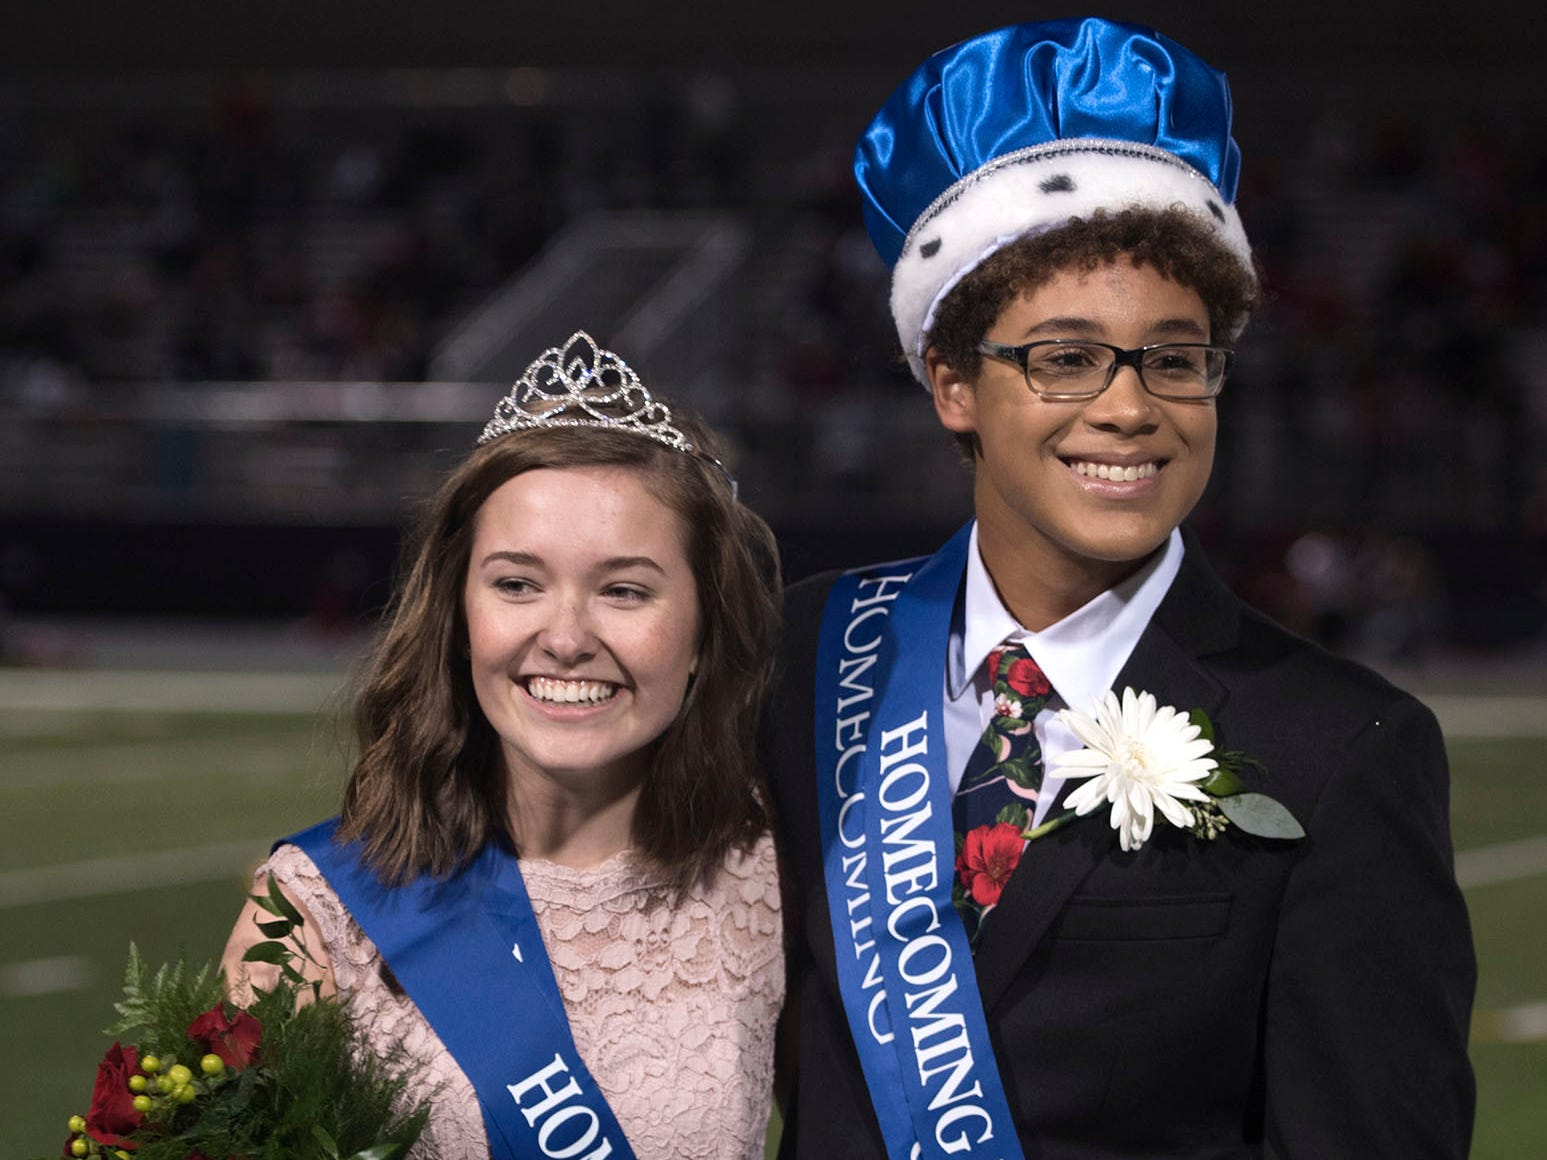 Keith Elijah Thomas and Elise Monheim are homecoming king and queen. Chambersburg Trojans are 5-1 after a homecoming victory over Cumberland Valley 28-14 in PIAA football on Friday, Sept. 28, 2018.